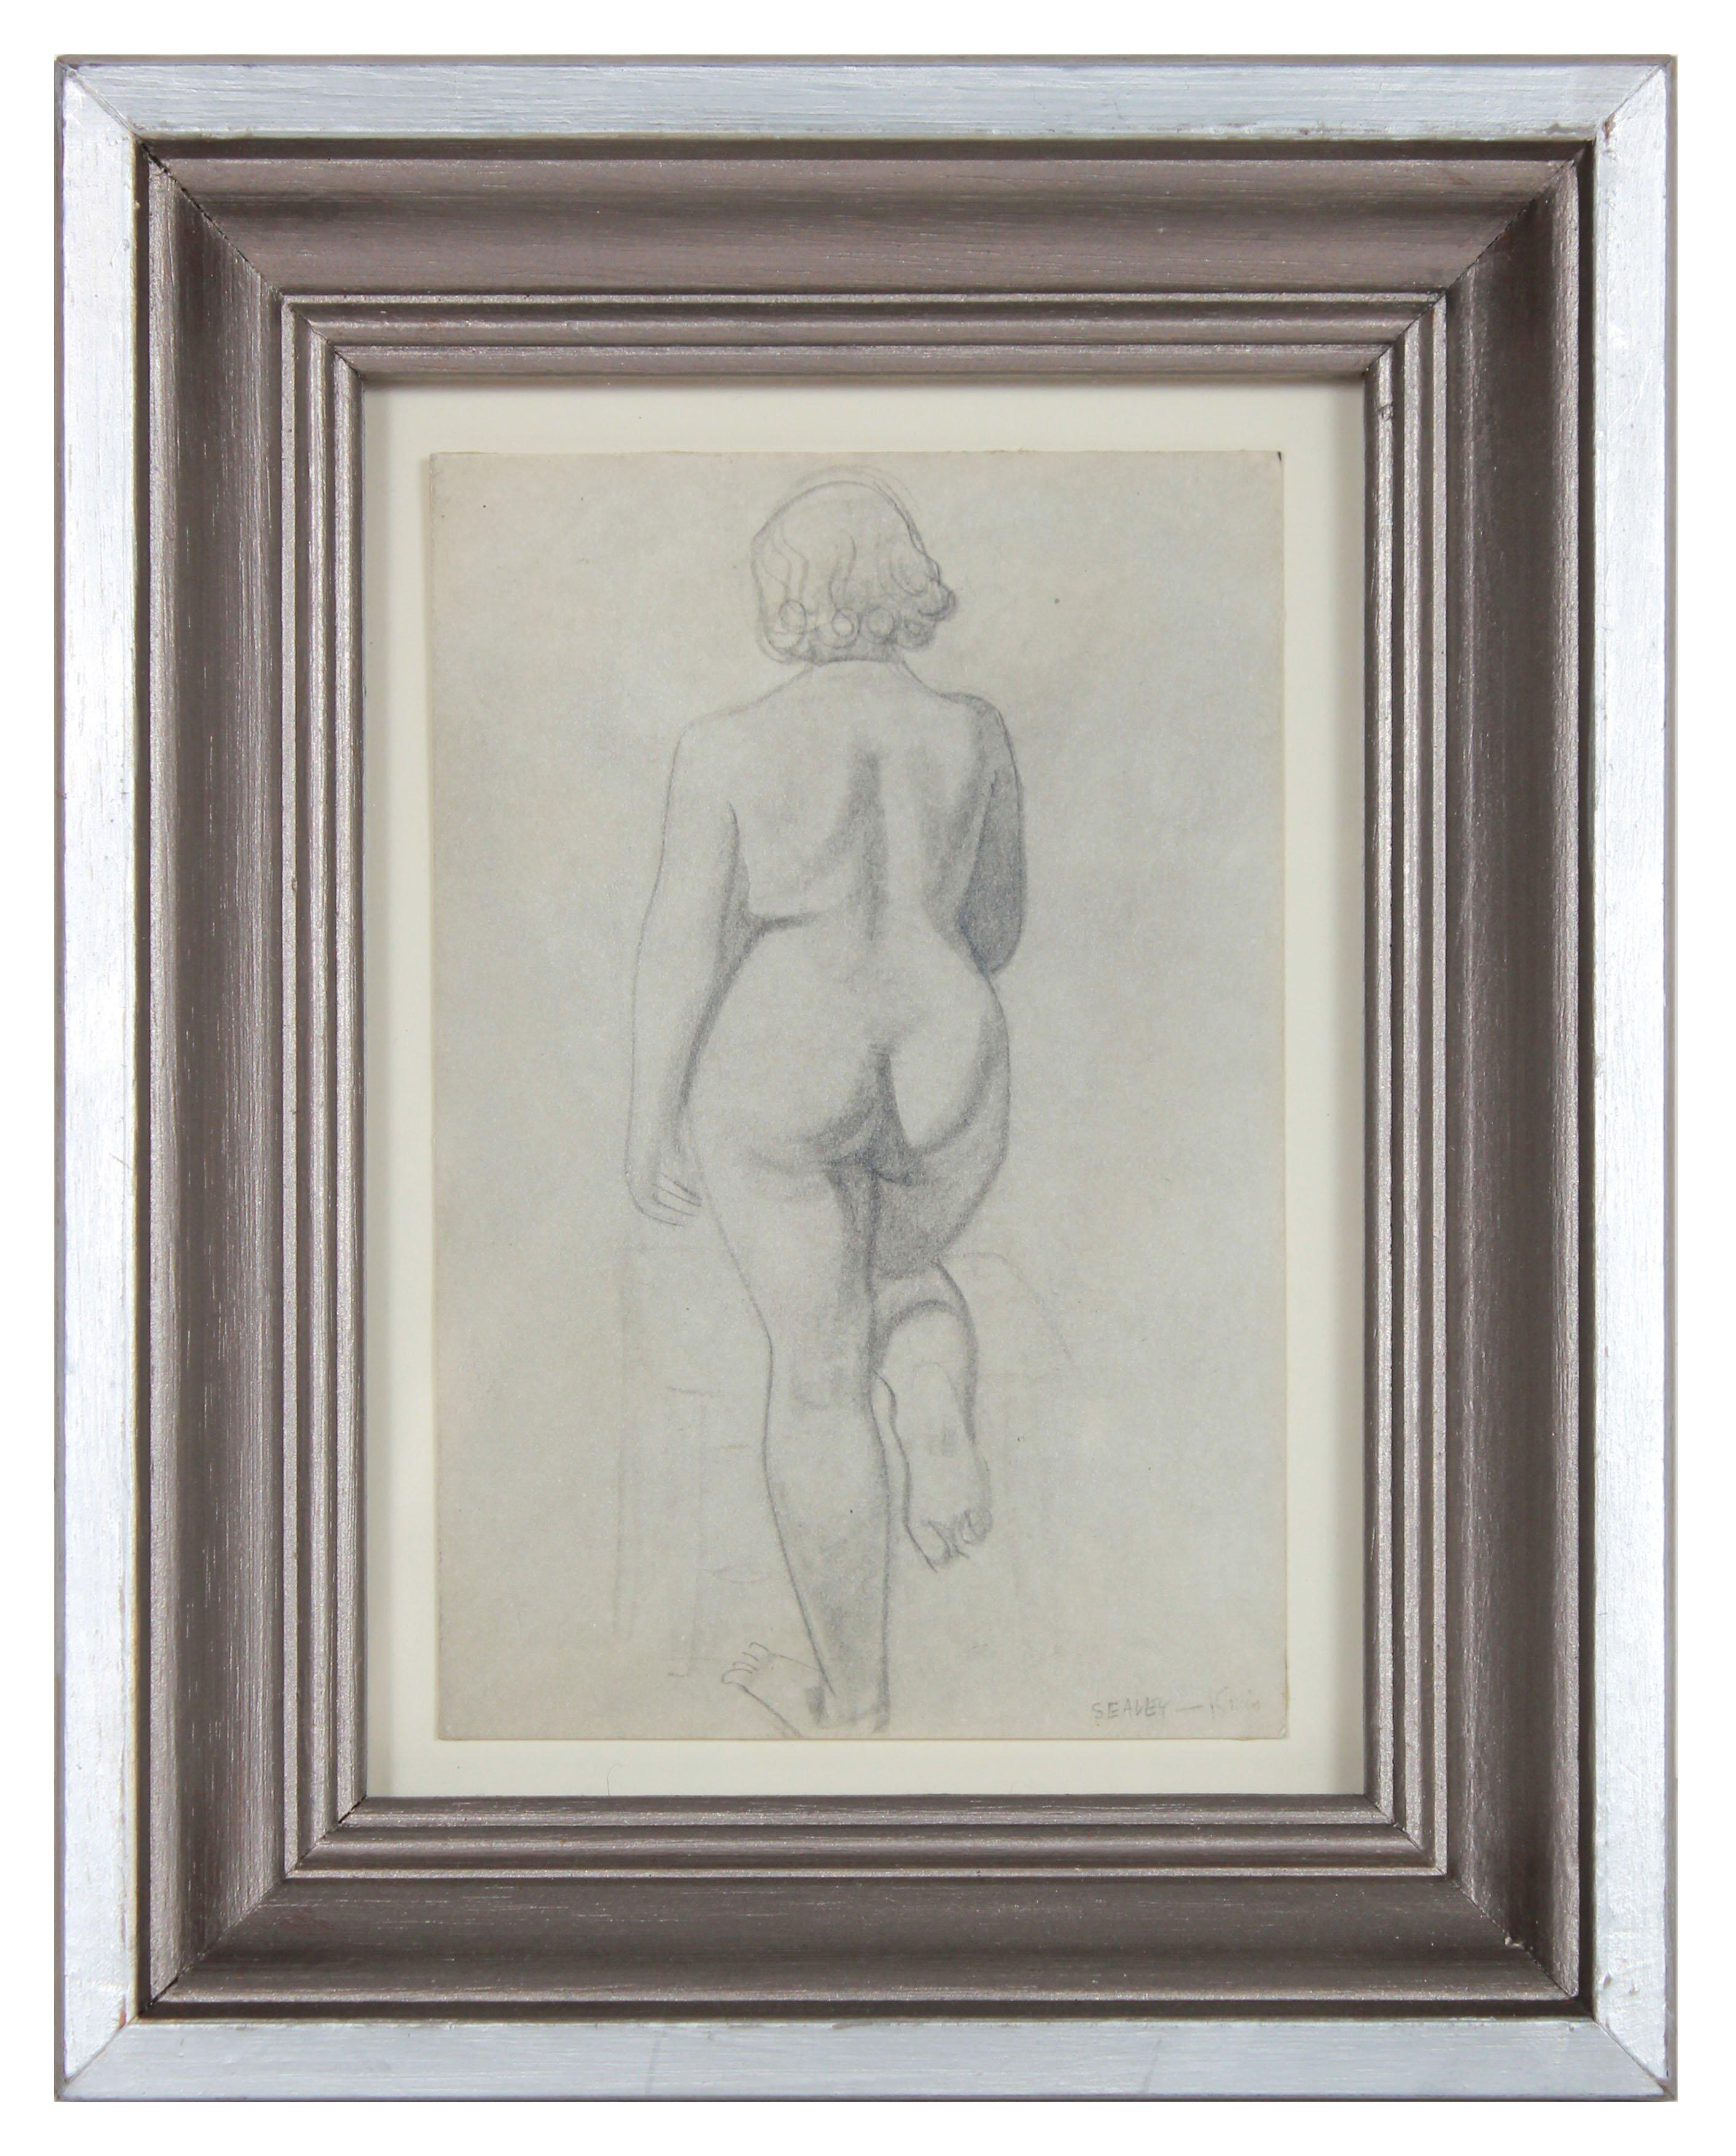 Meditation on a Female Nude from Behind 1920-30s Graphite